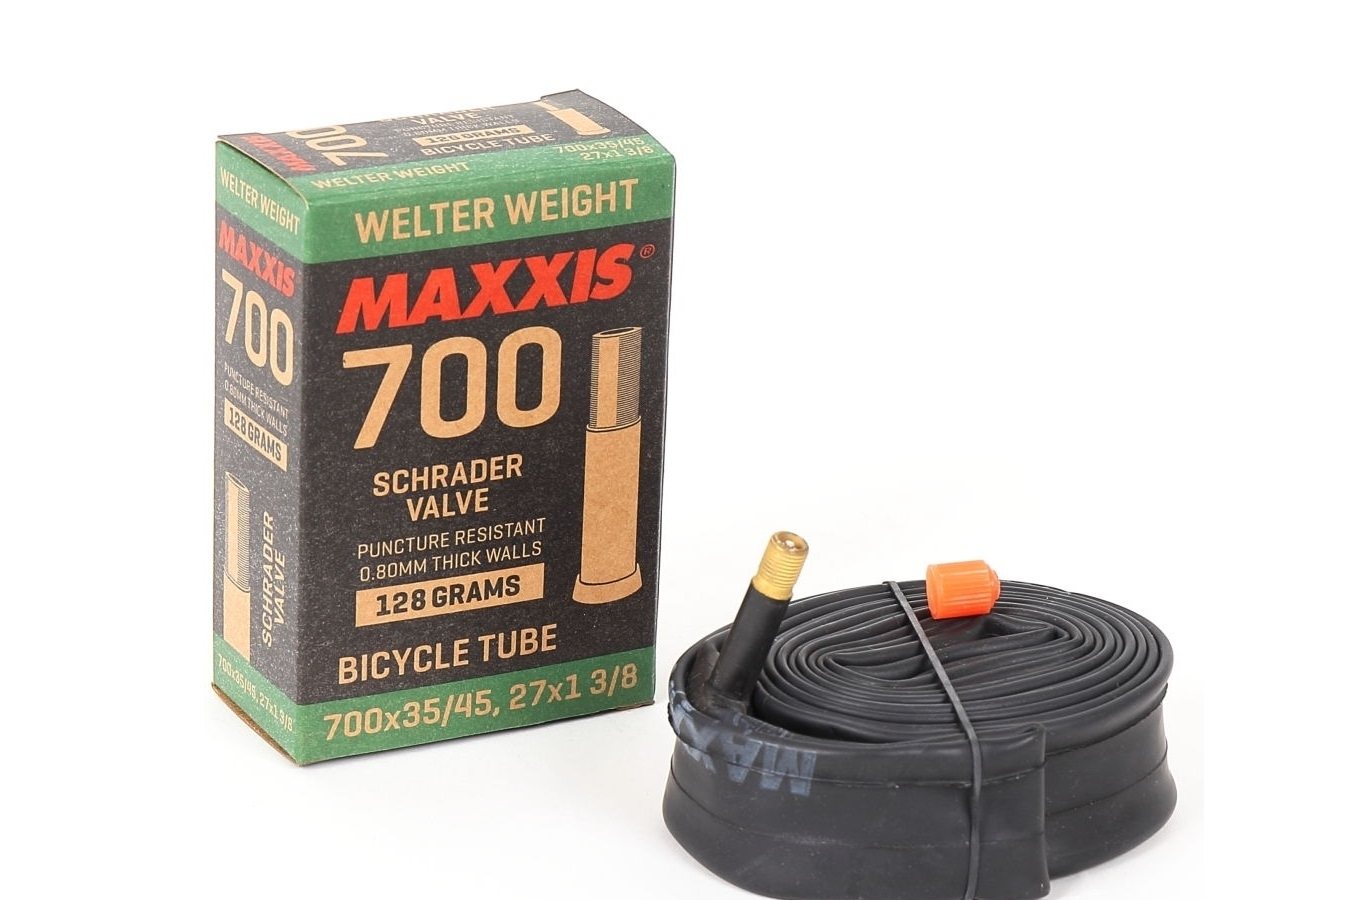 Камера Maxxis Welter Weight 700x35/45c A/V